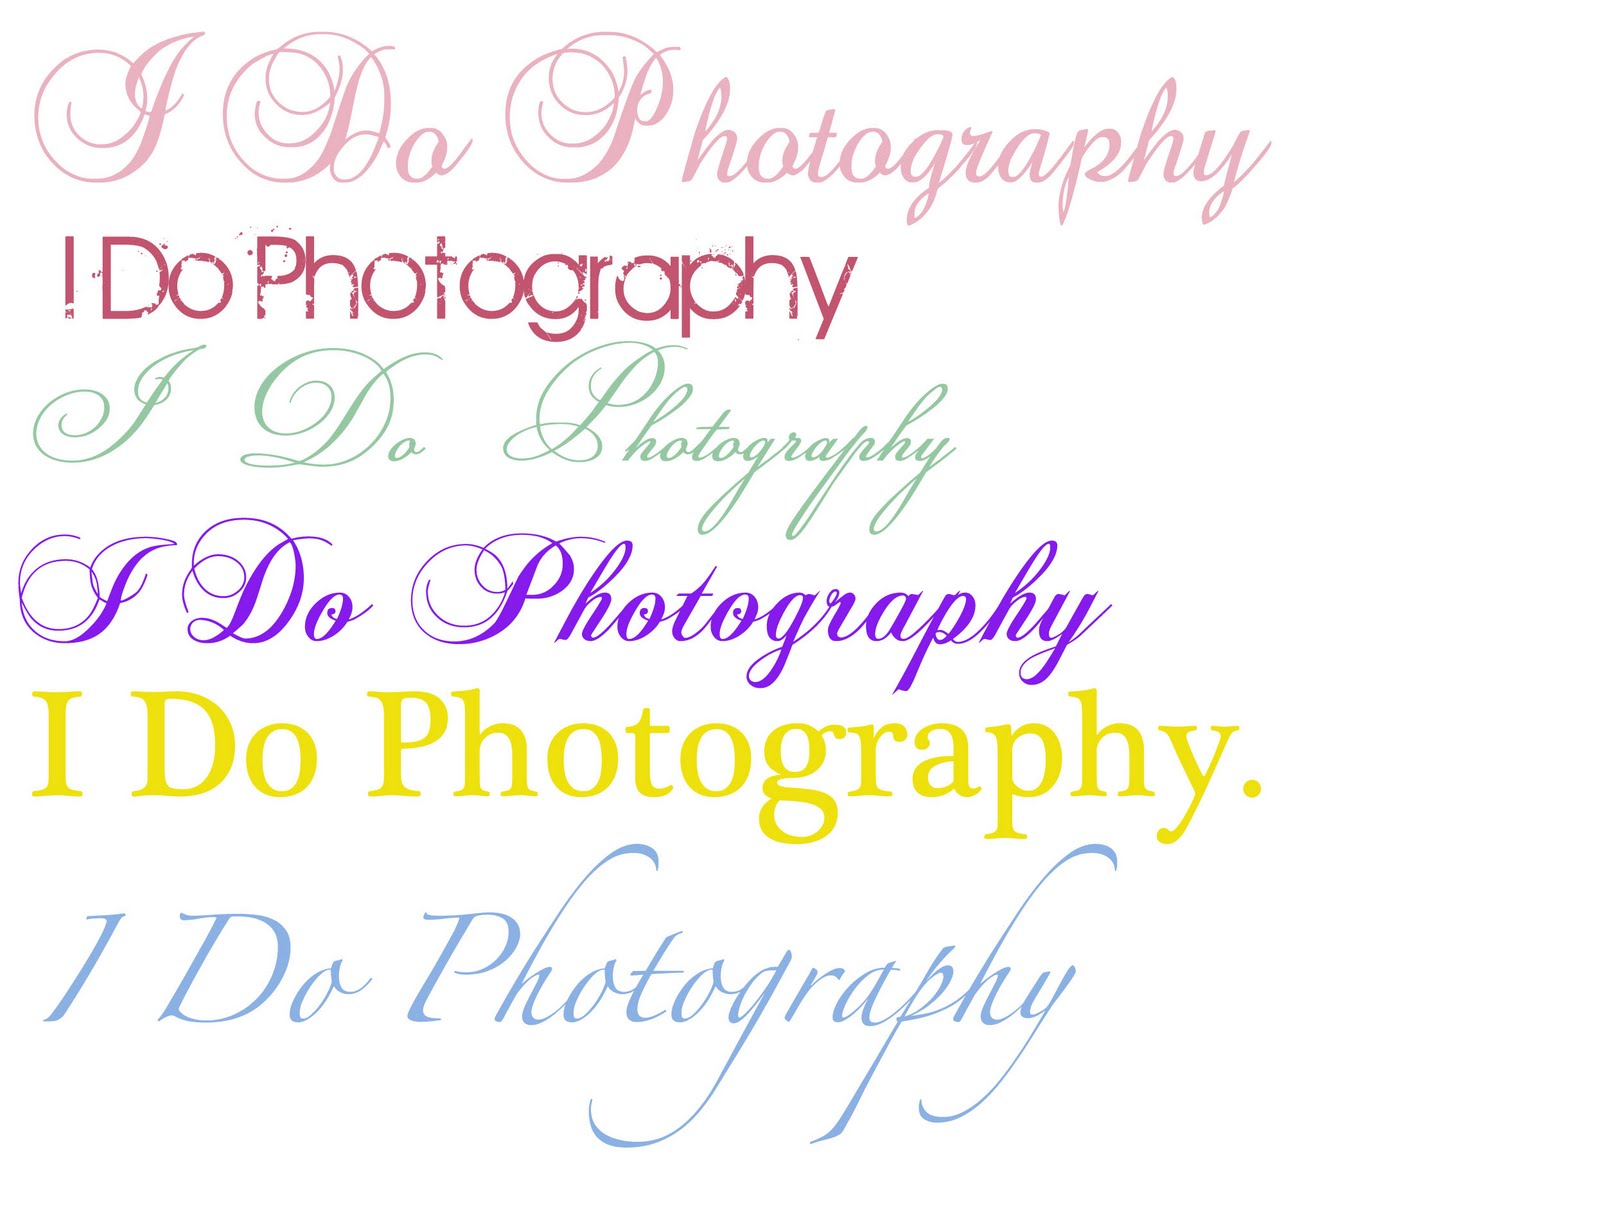 Jessica Hill S Photography Blog Business Planning